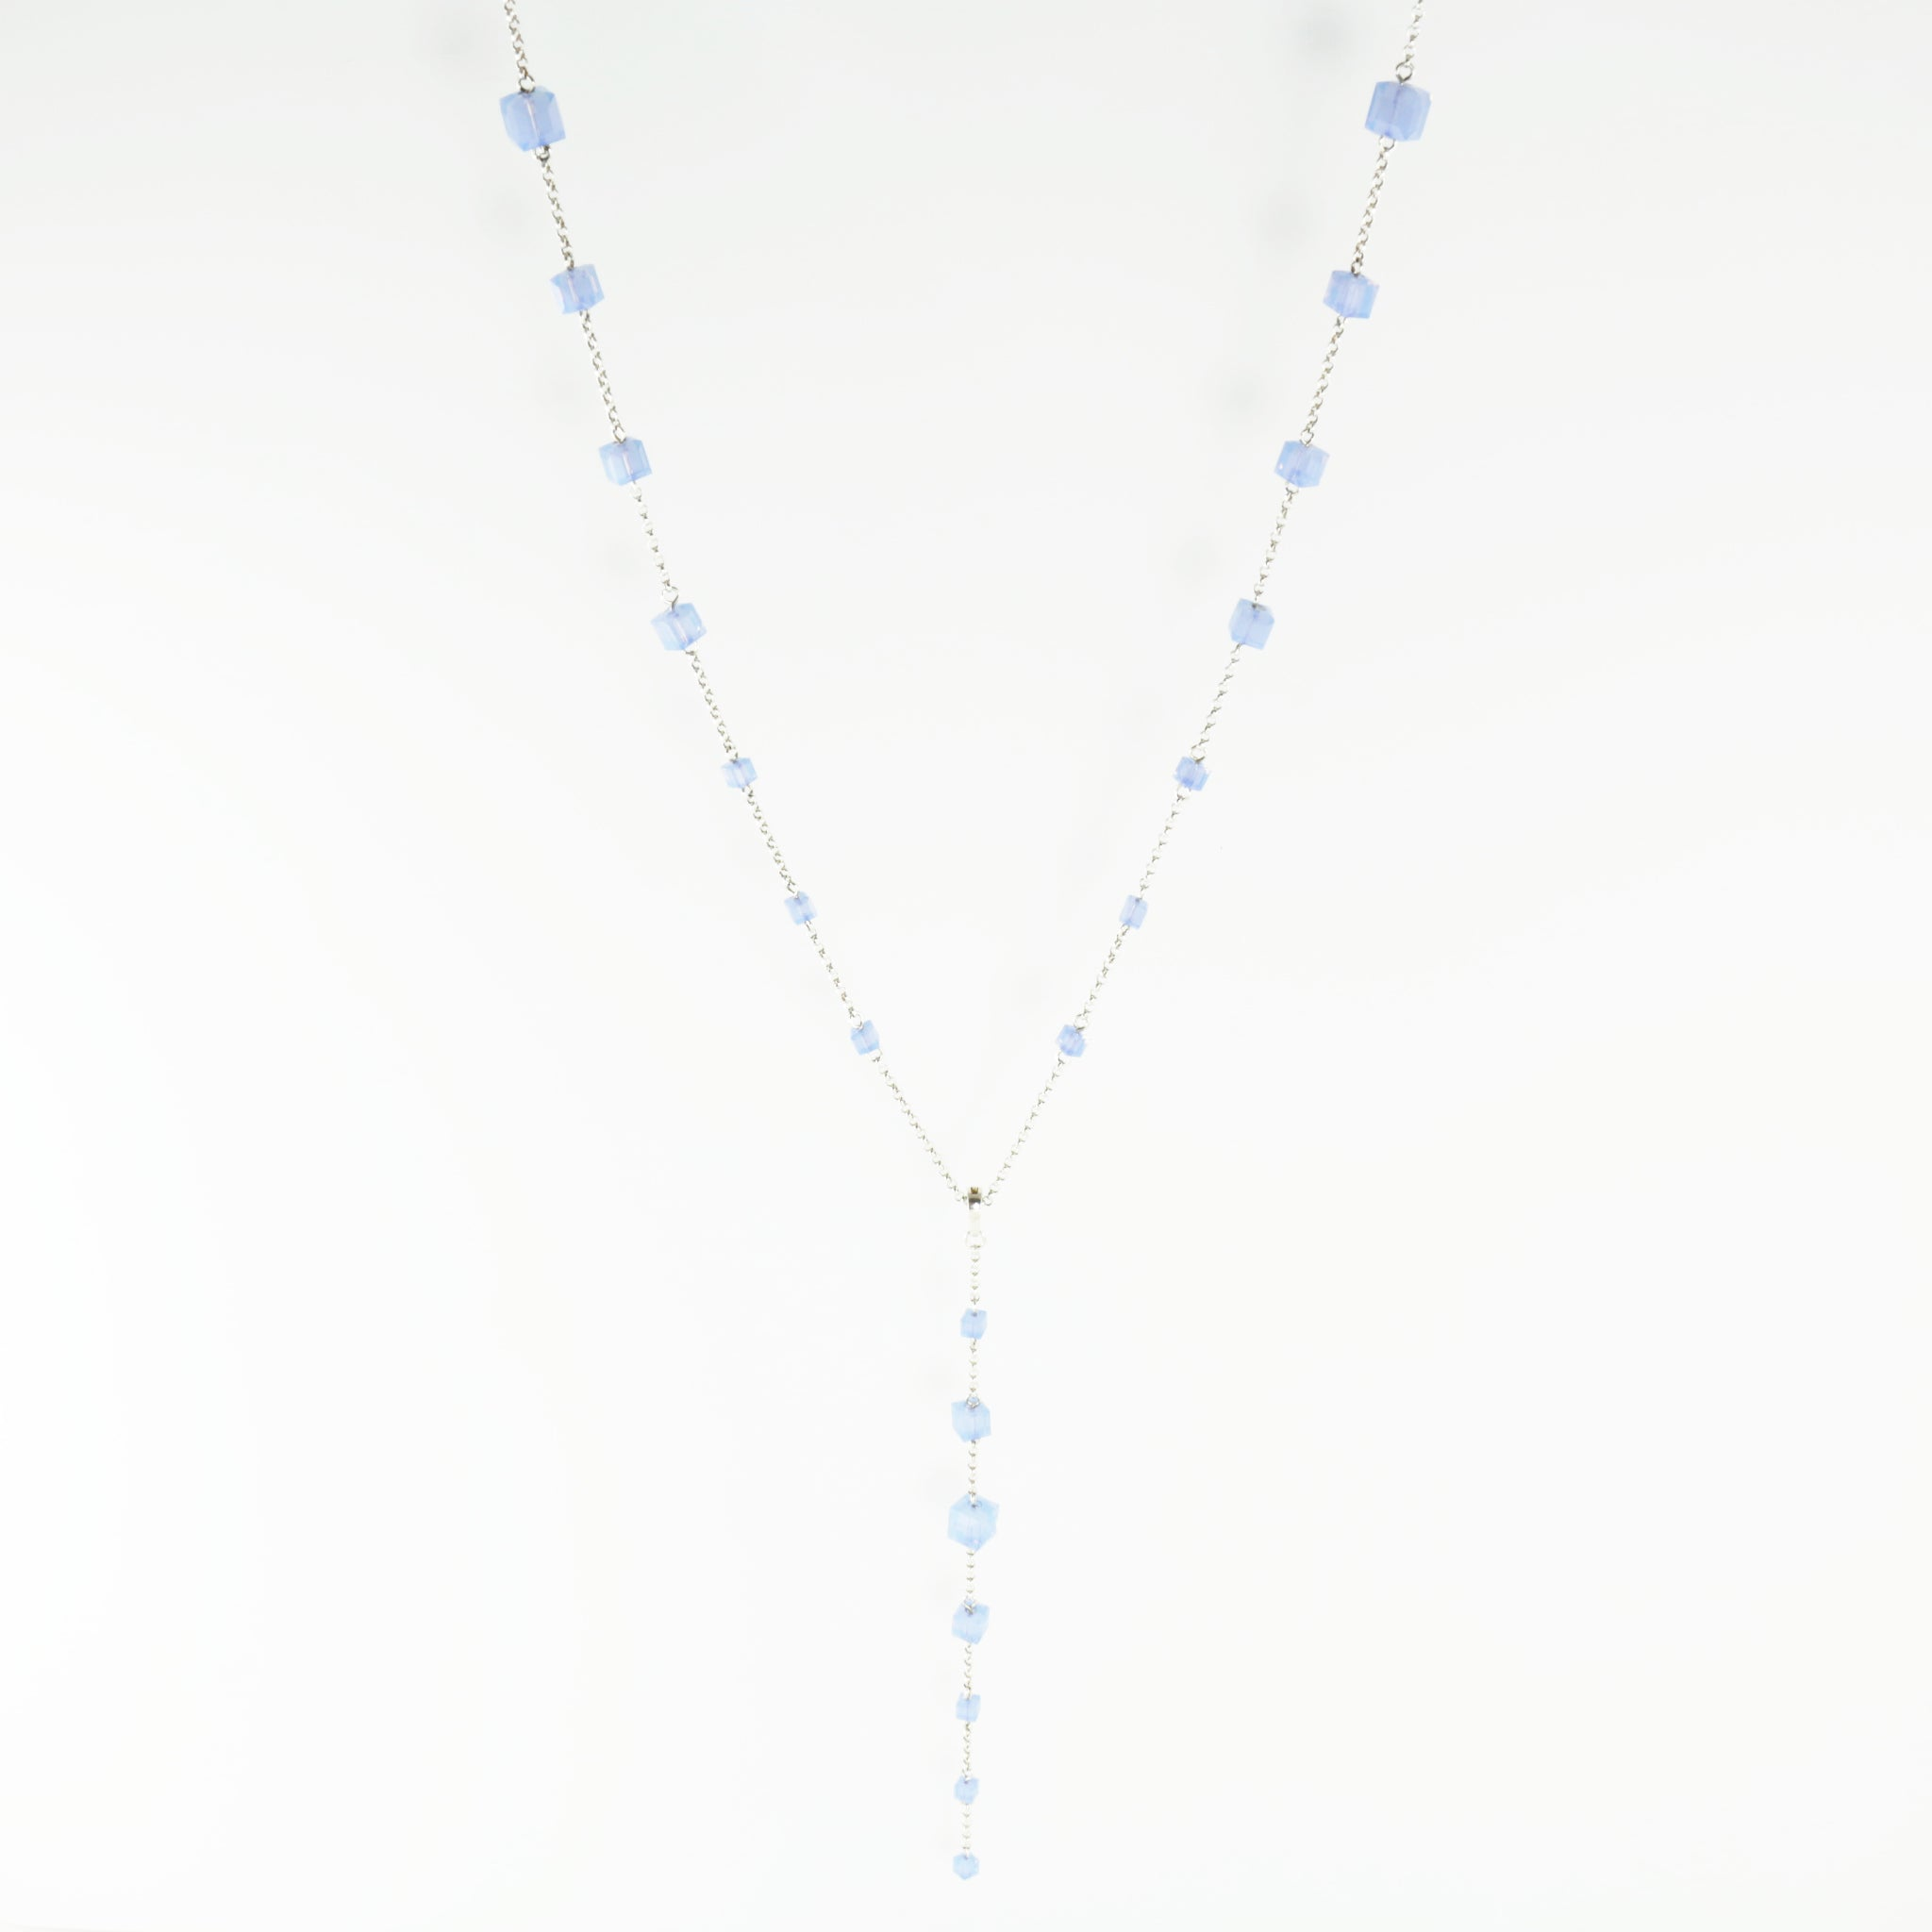 Windows Change-ABLE Necklace in Air Blue Opal